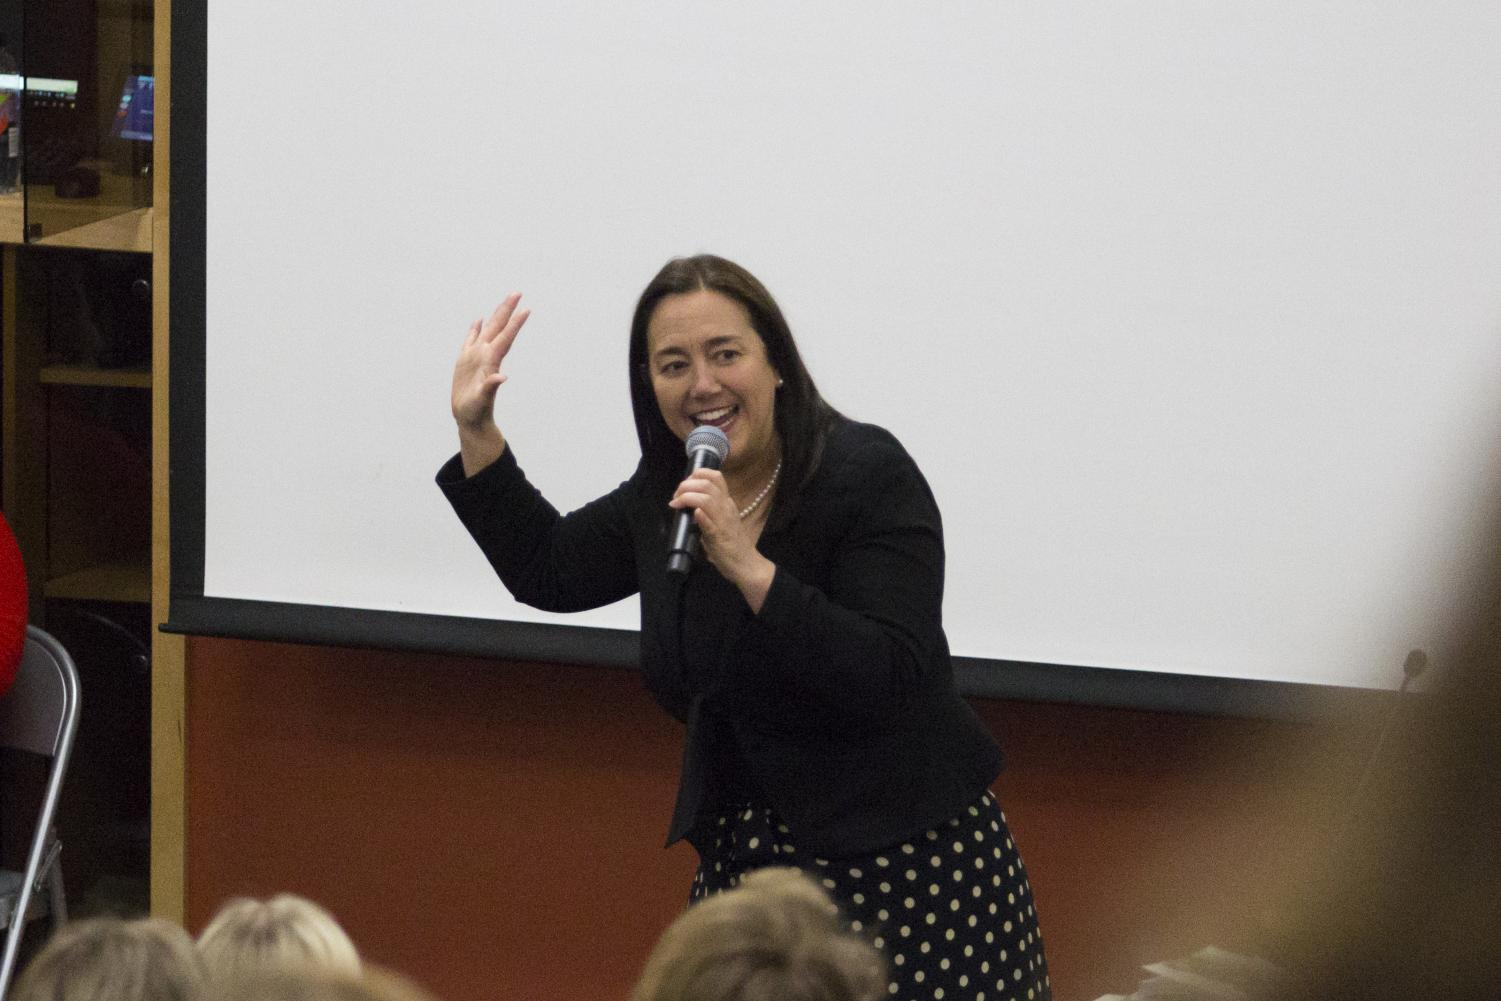 Erin Gruwell is a former teacher and educational activist who participated in a narrative-style lecture and book signing.